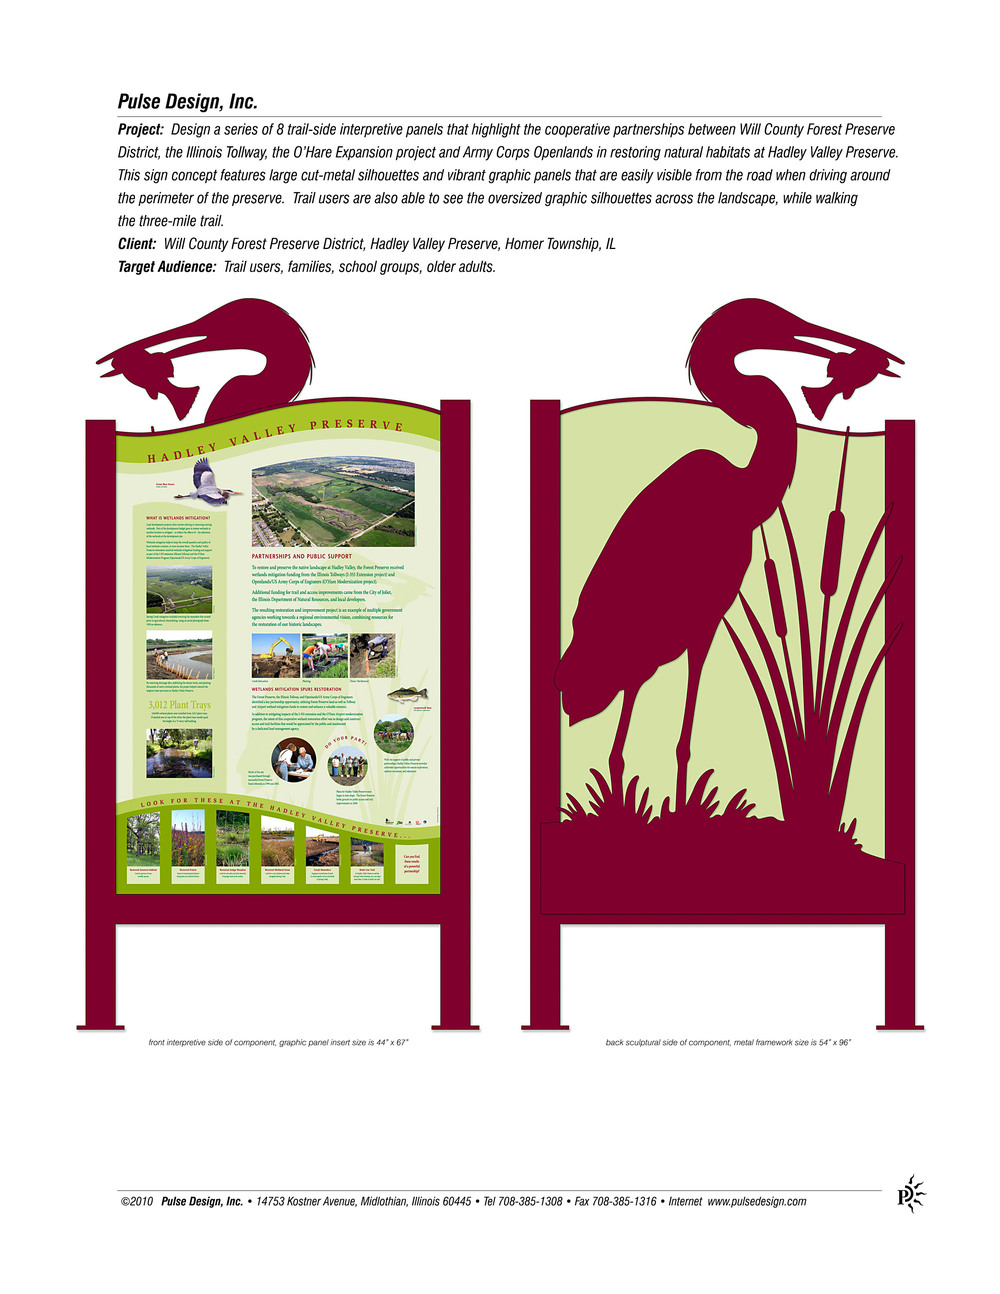 Hadley-Valley-Trail-Sign-Heron-Lg-Pulse-Design-Inc.jpg